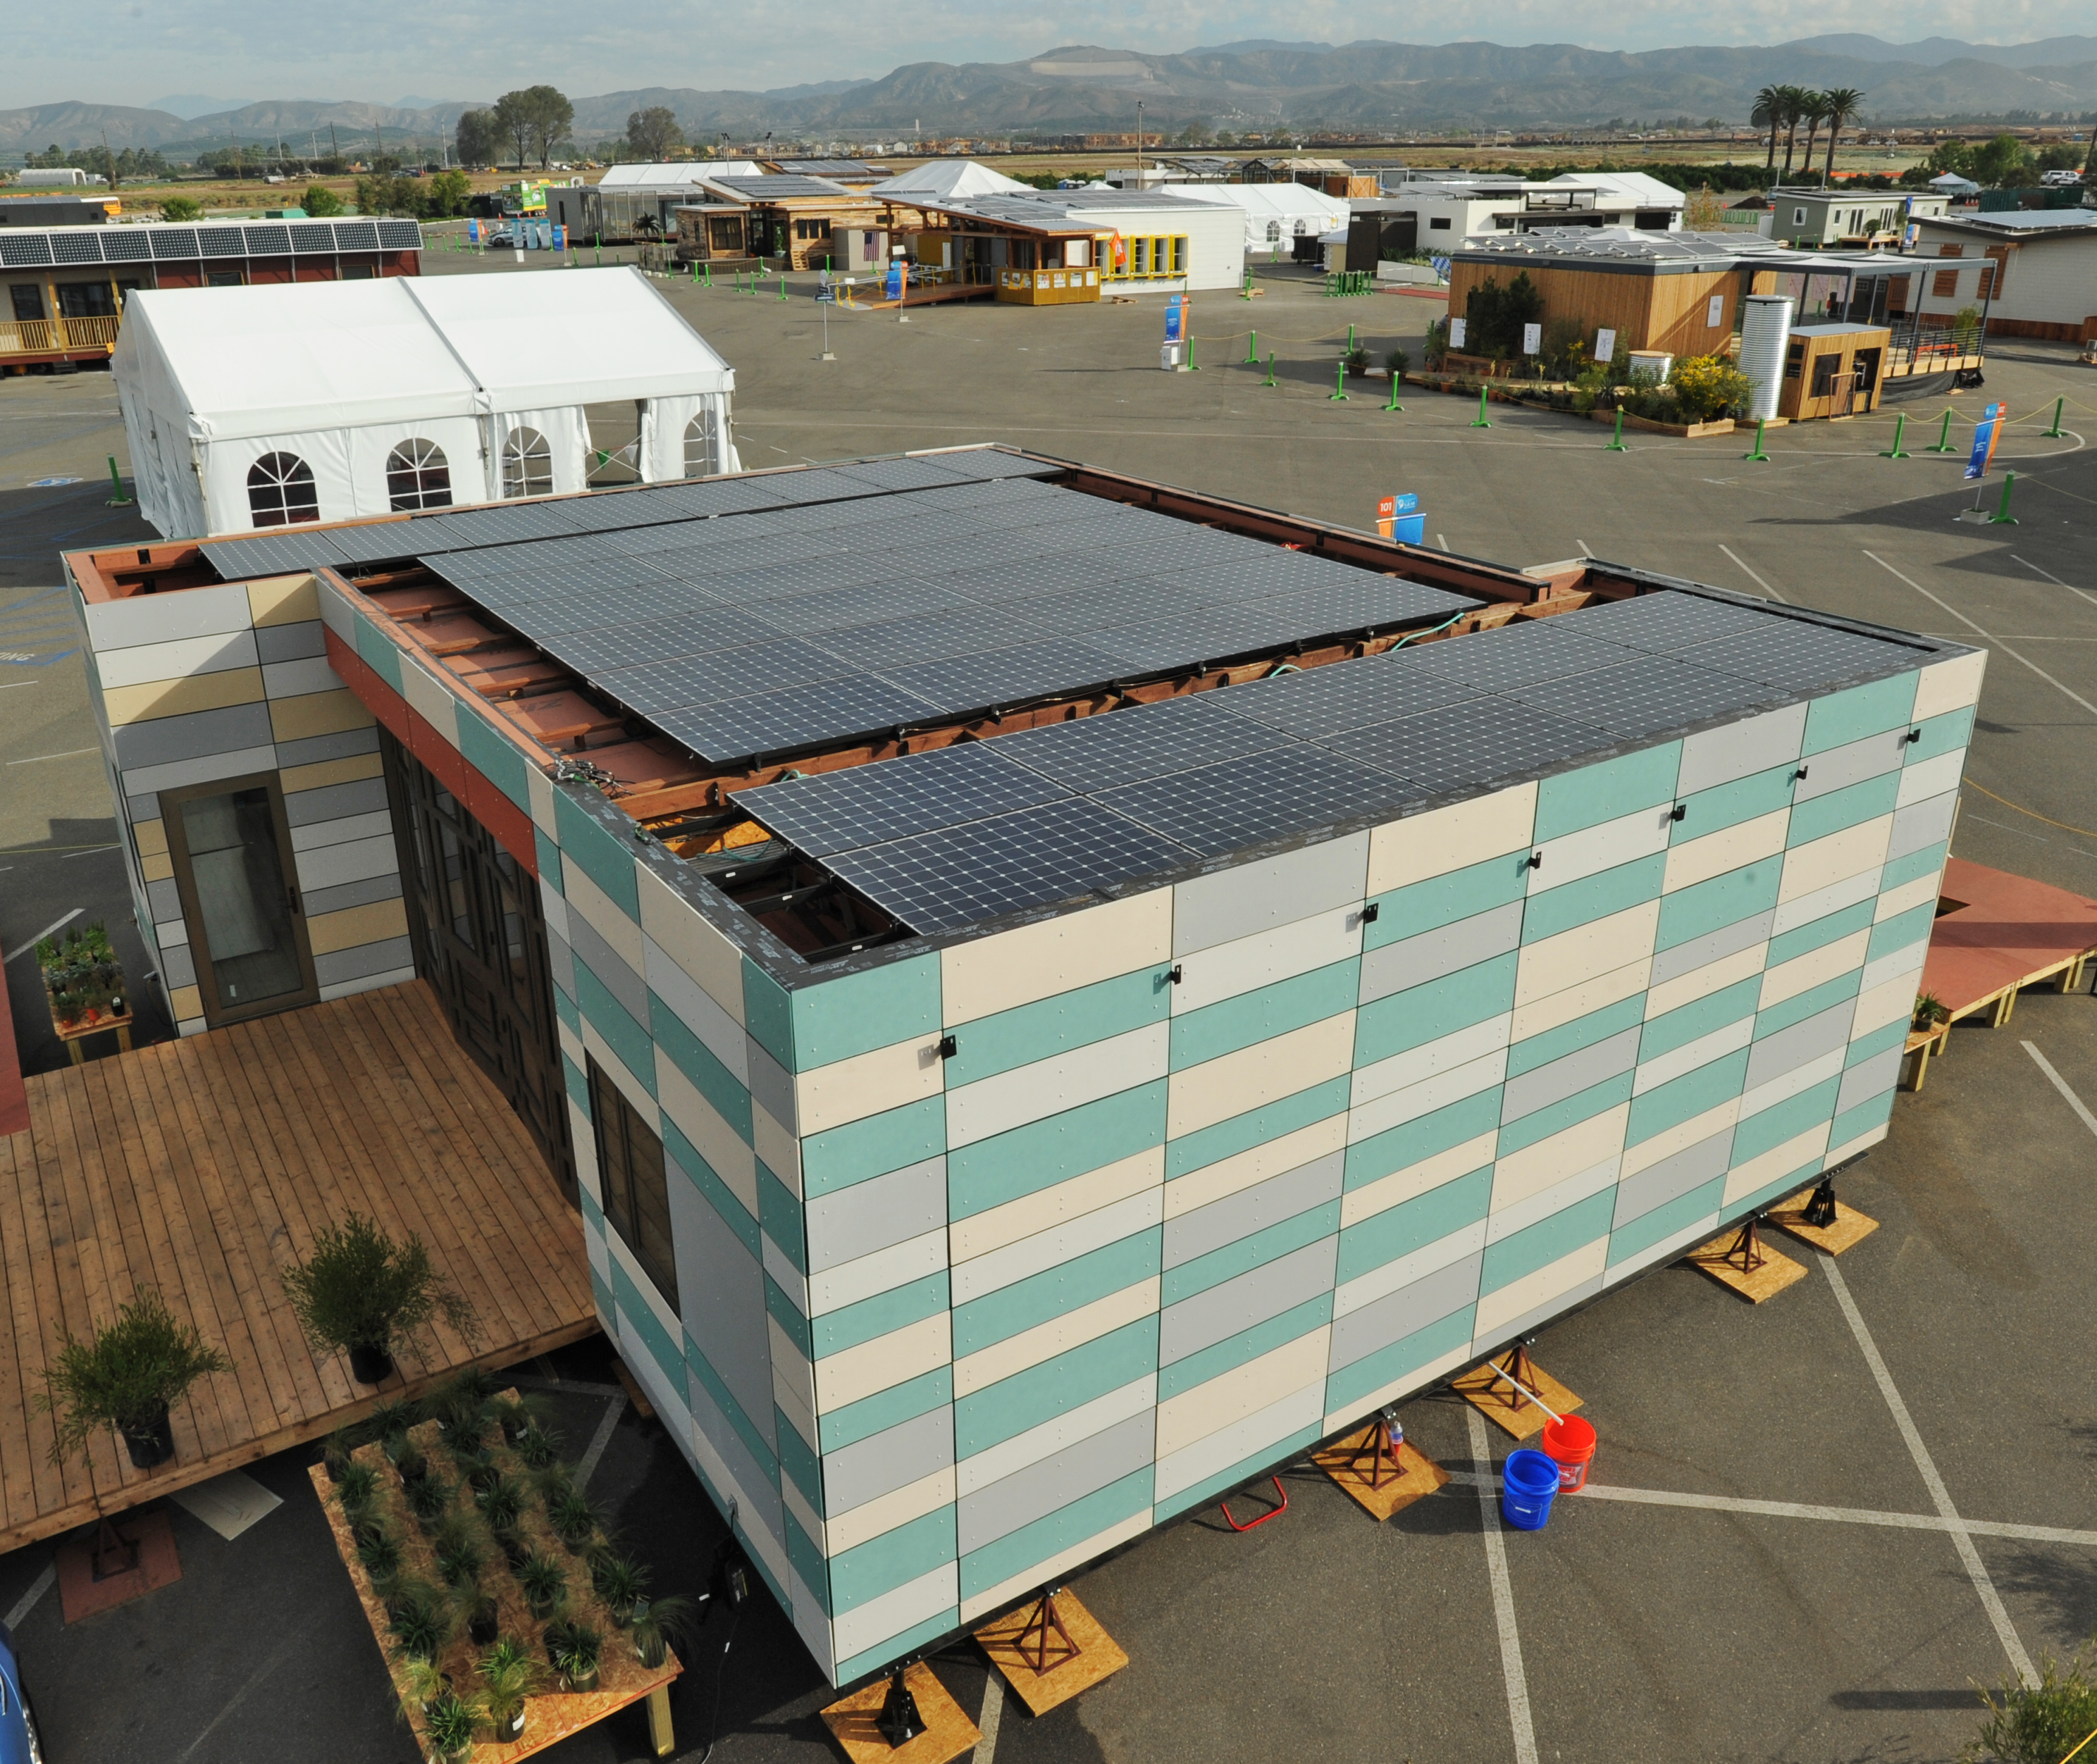 PV arrays for Crowder College and Drury University at the U.S. Department of Energy Solar Decathlon 2015 at the Orange County Great Park, Irvine, California (Credit: Thomas Kelsey/U.S. Department of Energy Solar Decathlon)